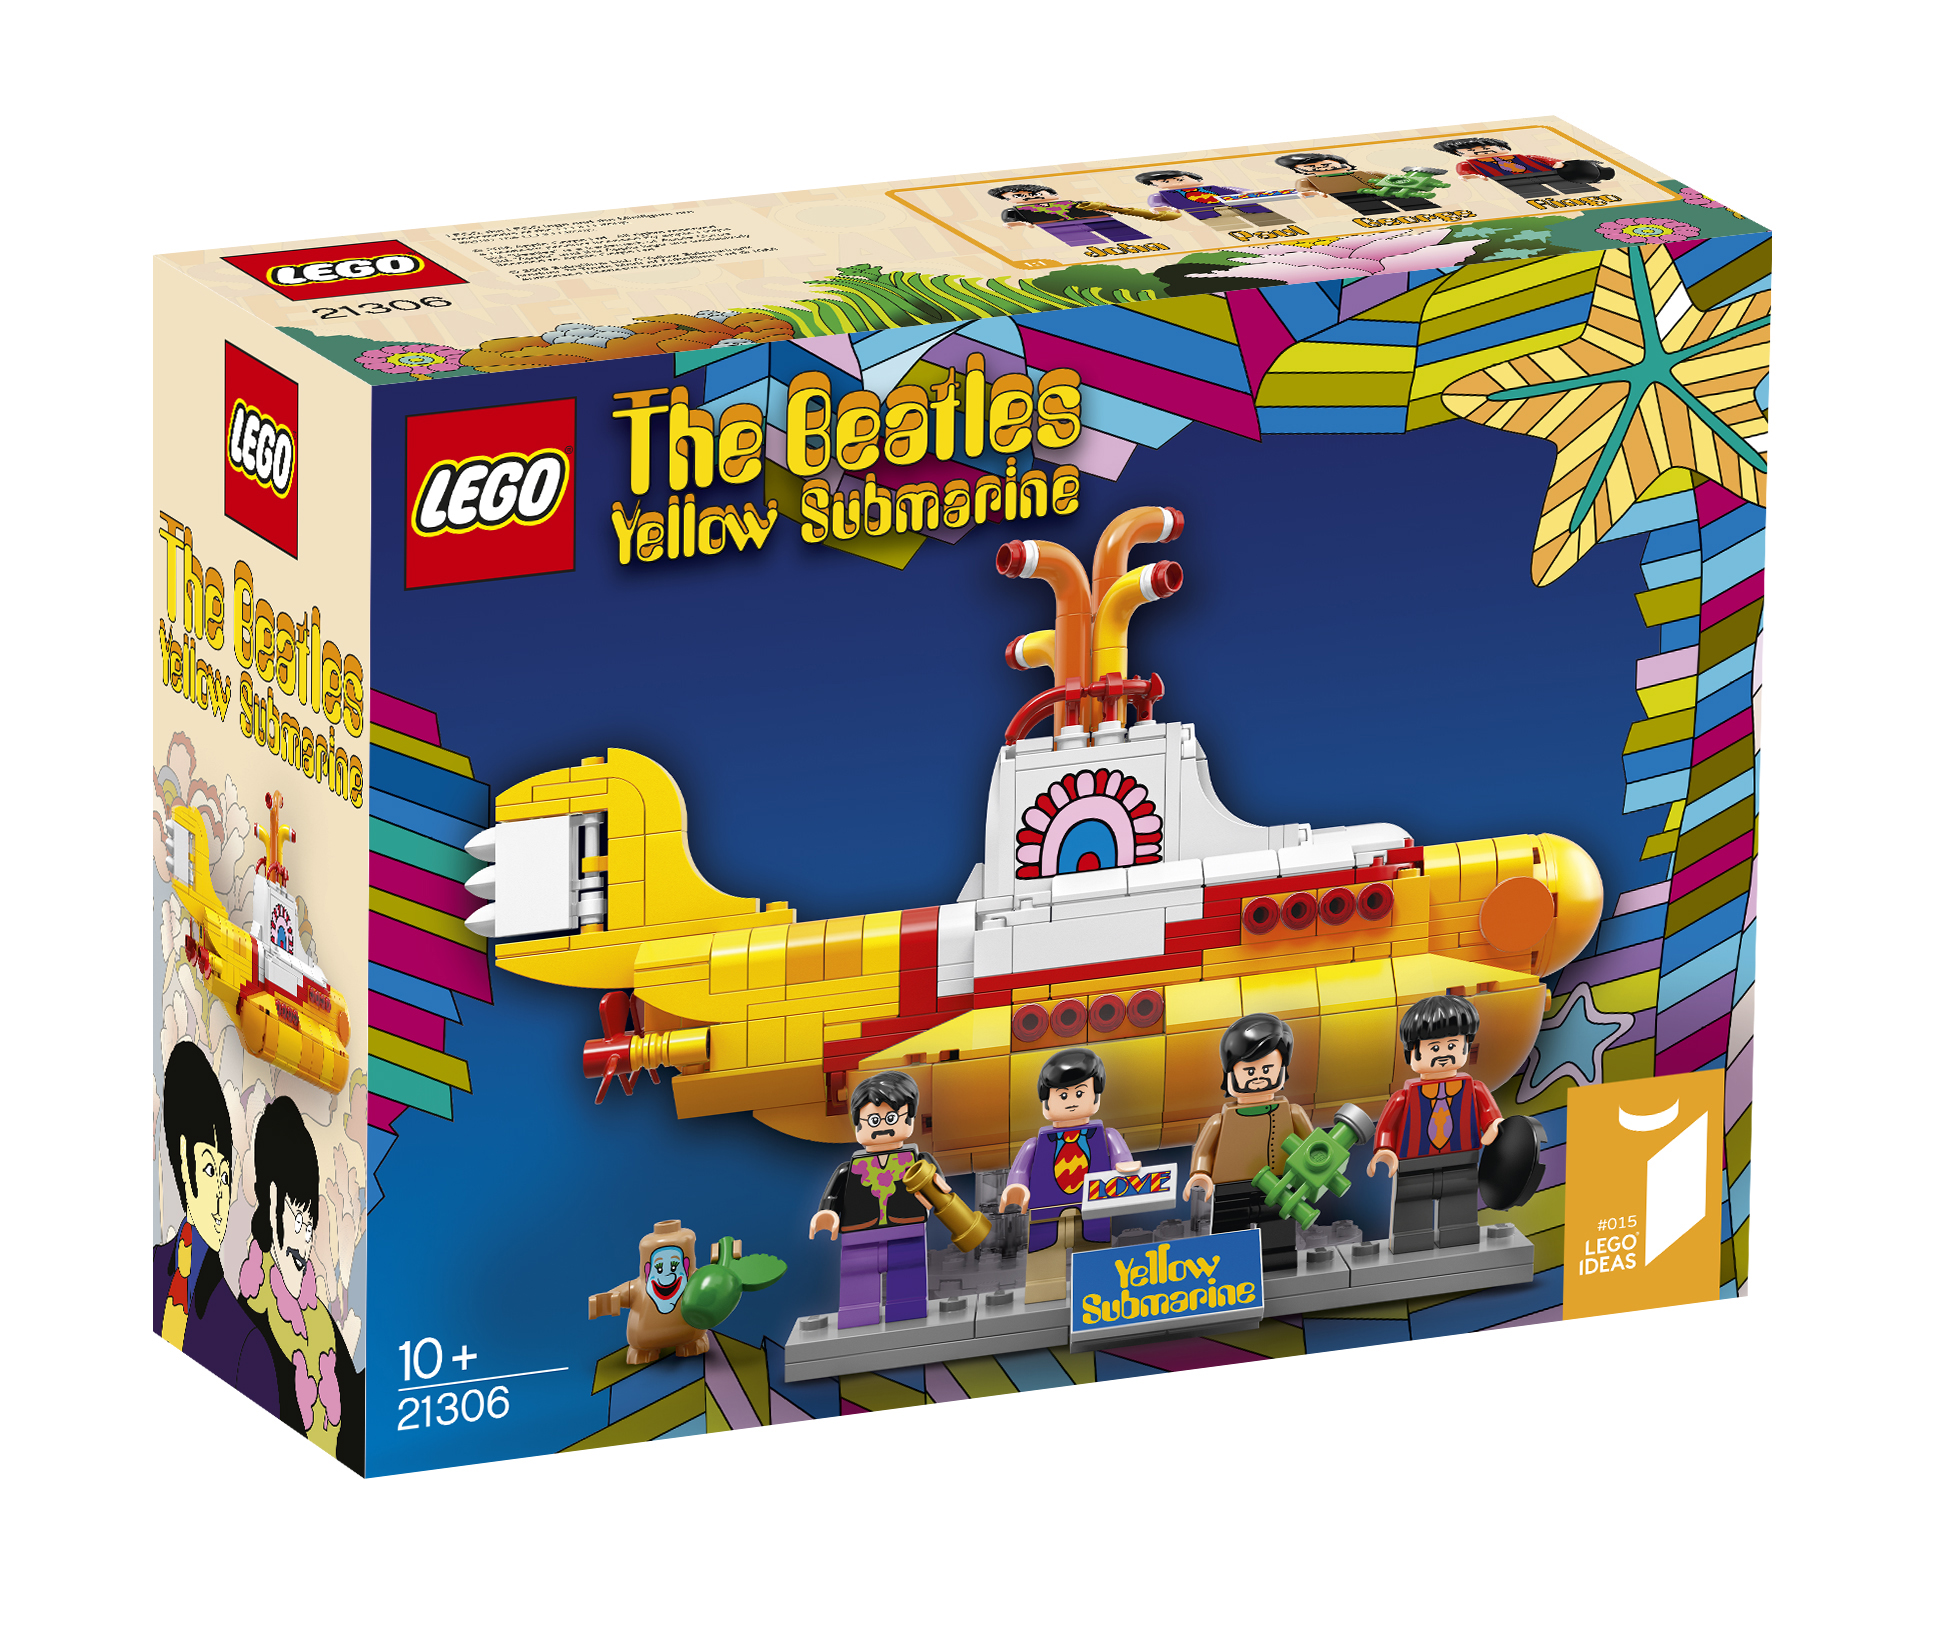 The Beatles LEGO Yellow Submarine